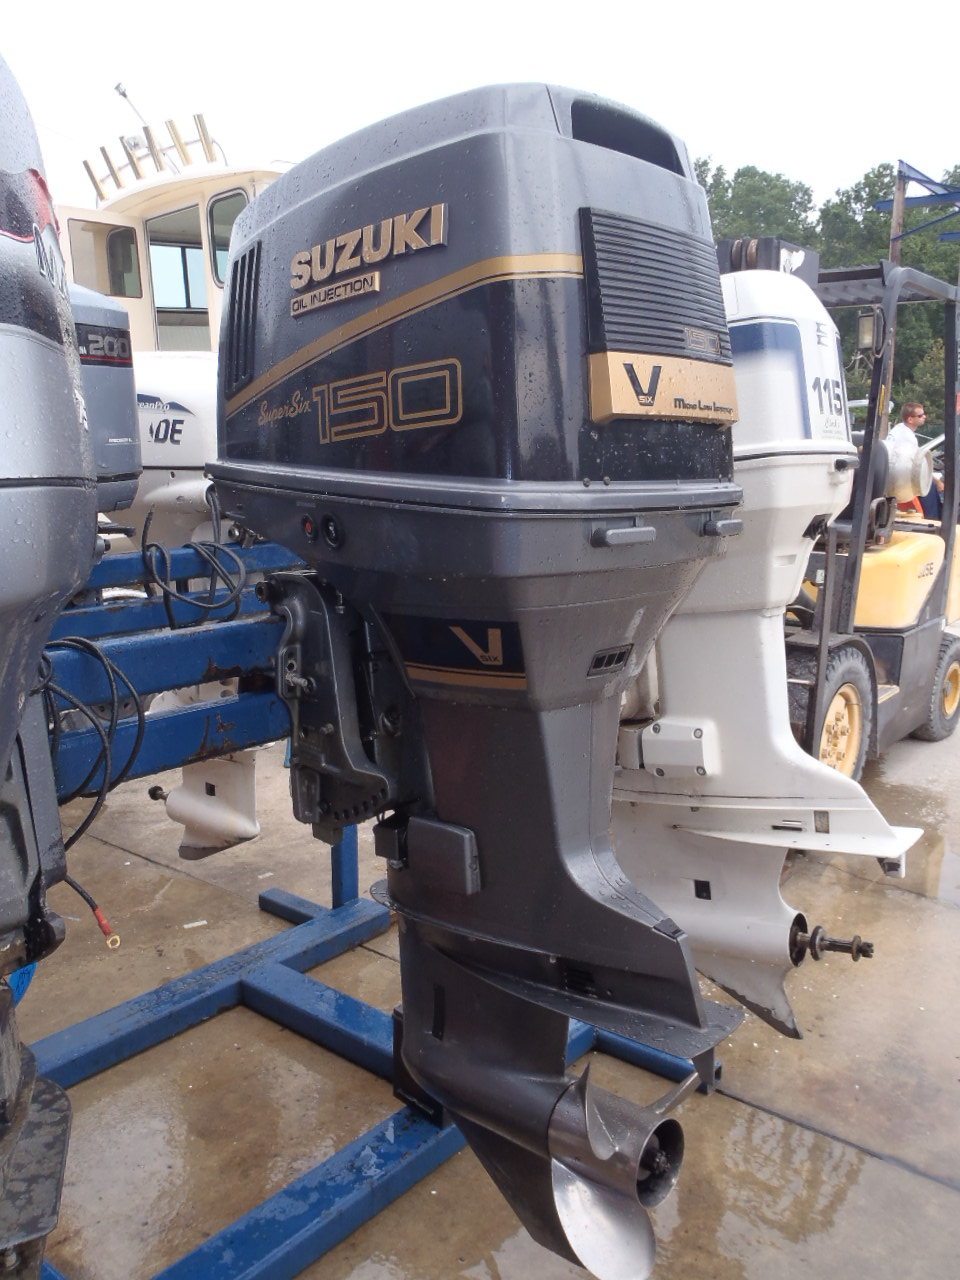 Suzuki 150 Outboard Price Motorcycle Image Idea 1988 Motor Parts Used 1992 Dt150 150hp 2 Stroke Boat 20